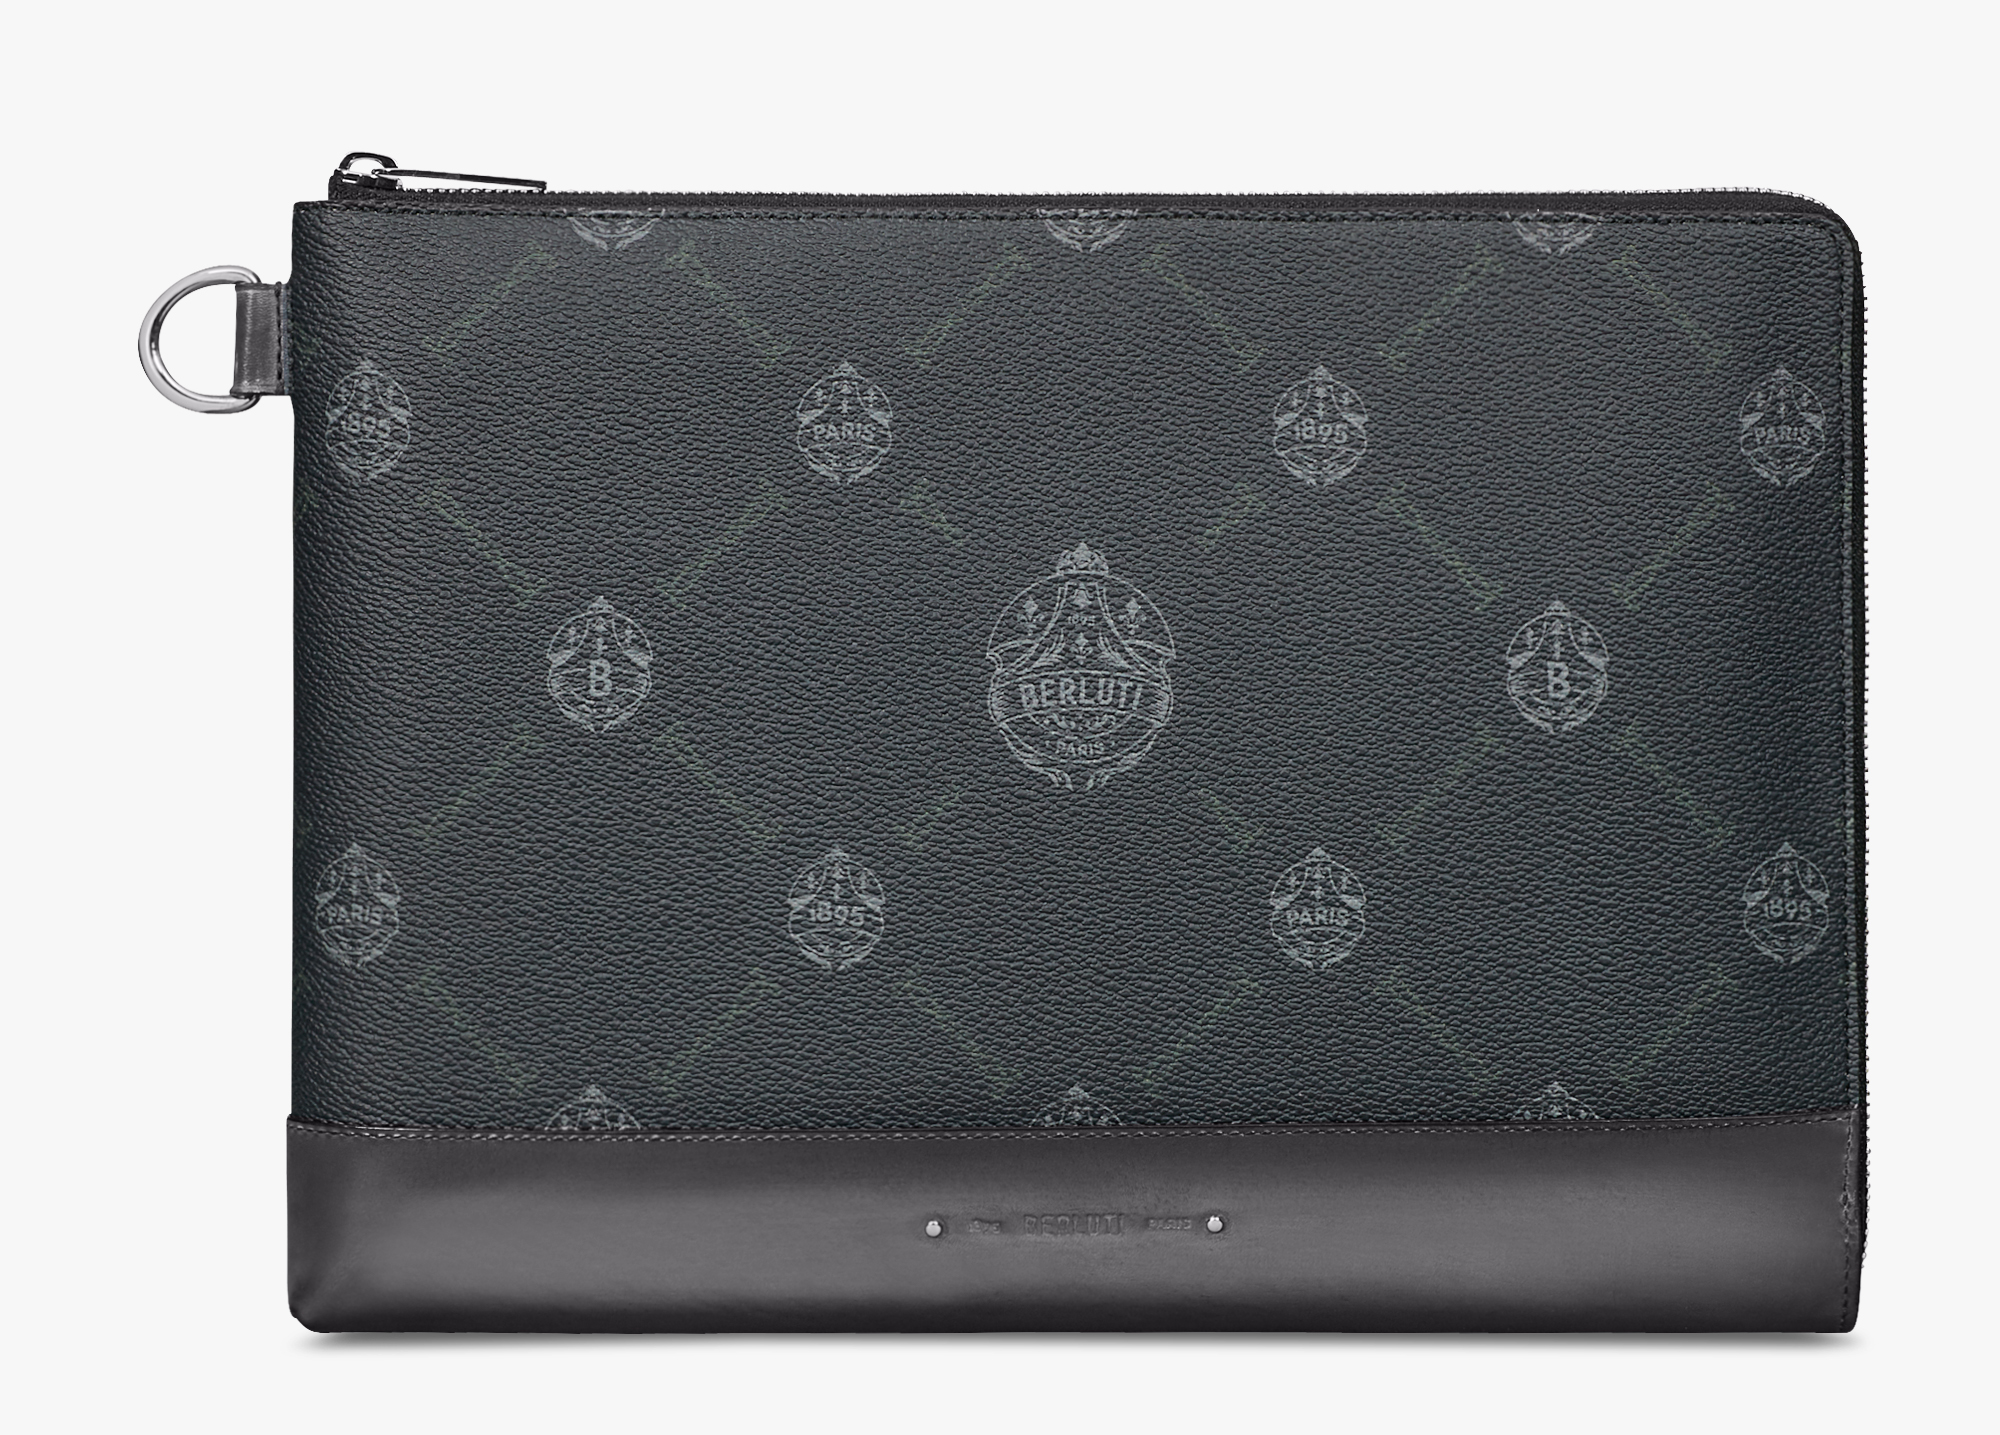 Nino Large Canvas and Leather Clutch , BLACK + LIGHT ALUMINIO, hi-res